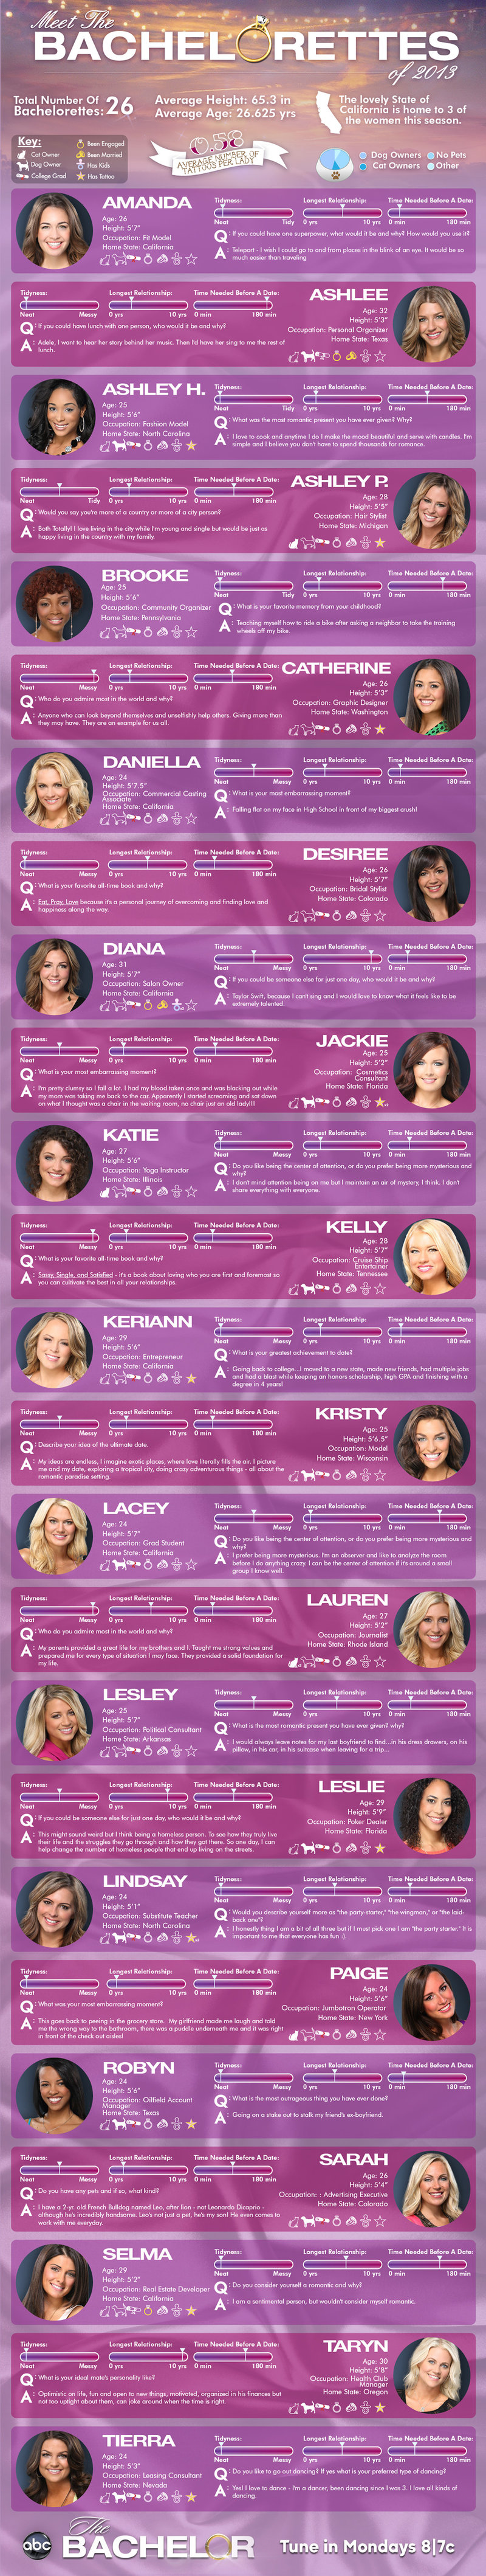 Bachelor Sean Lowe contestant infographic